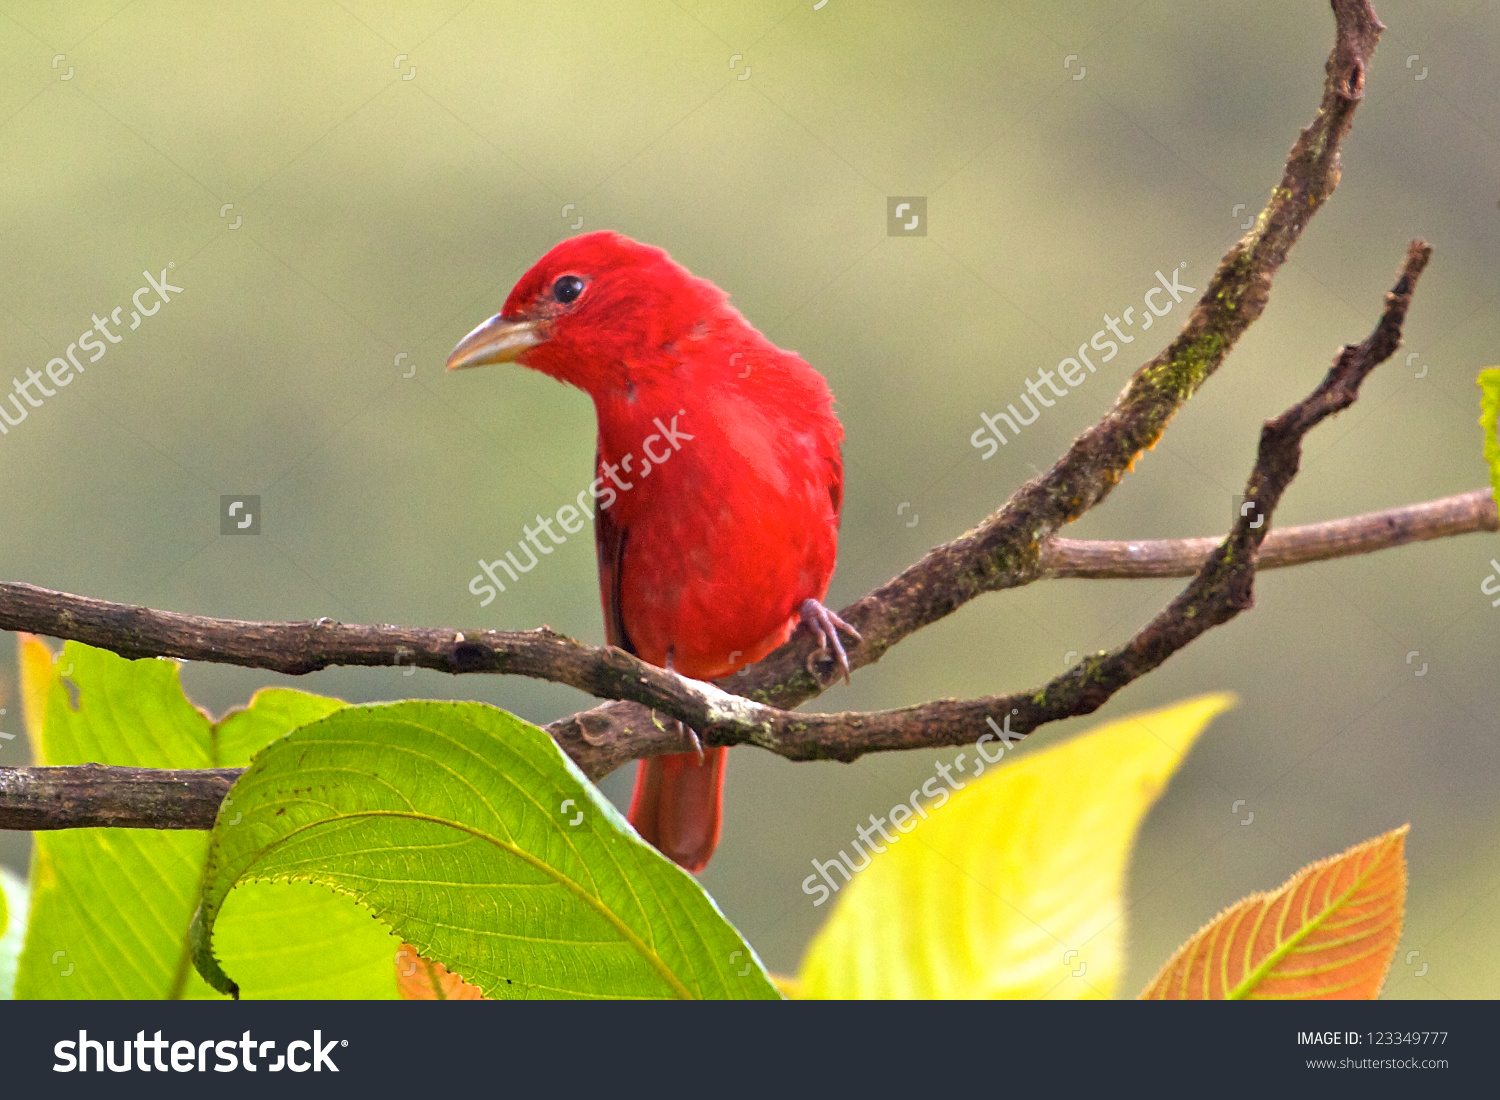 Summer Tanager clipart #2, Download drawings